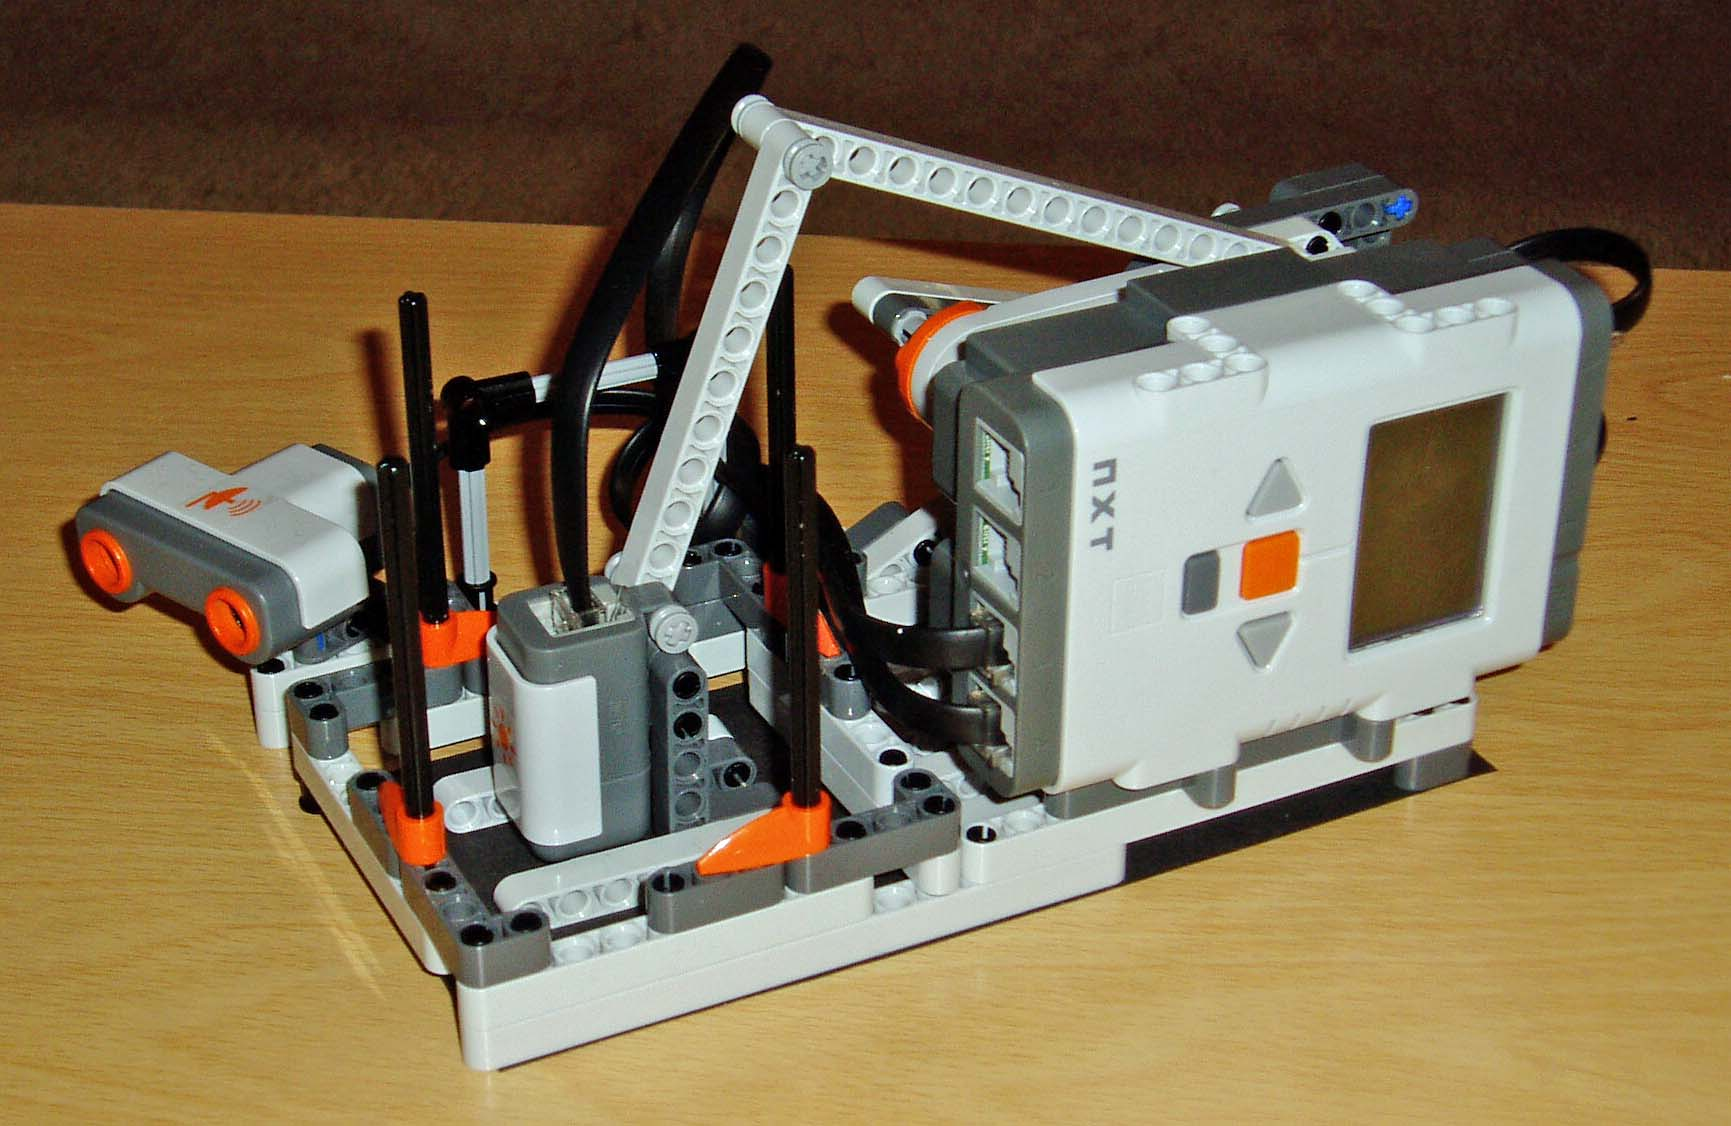 lego nxt tower crane instructions